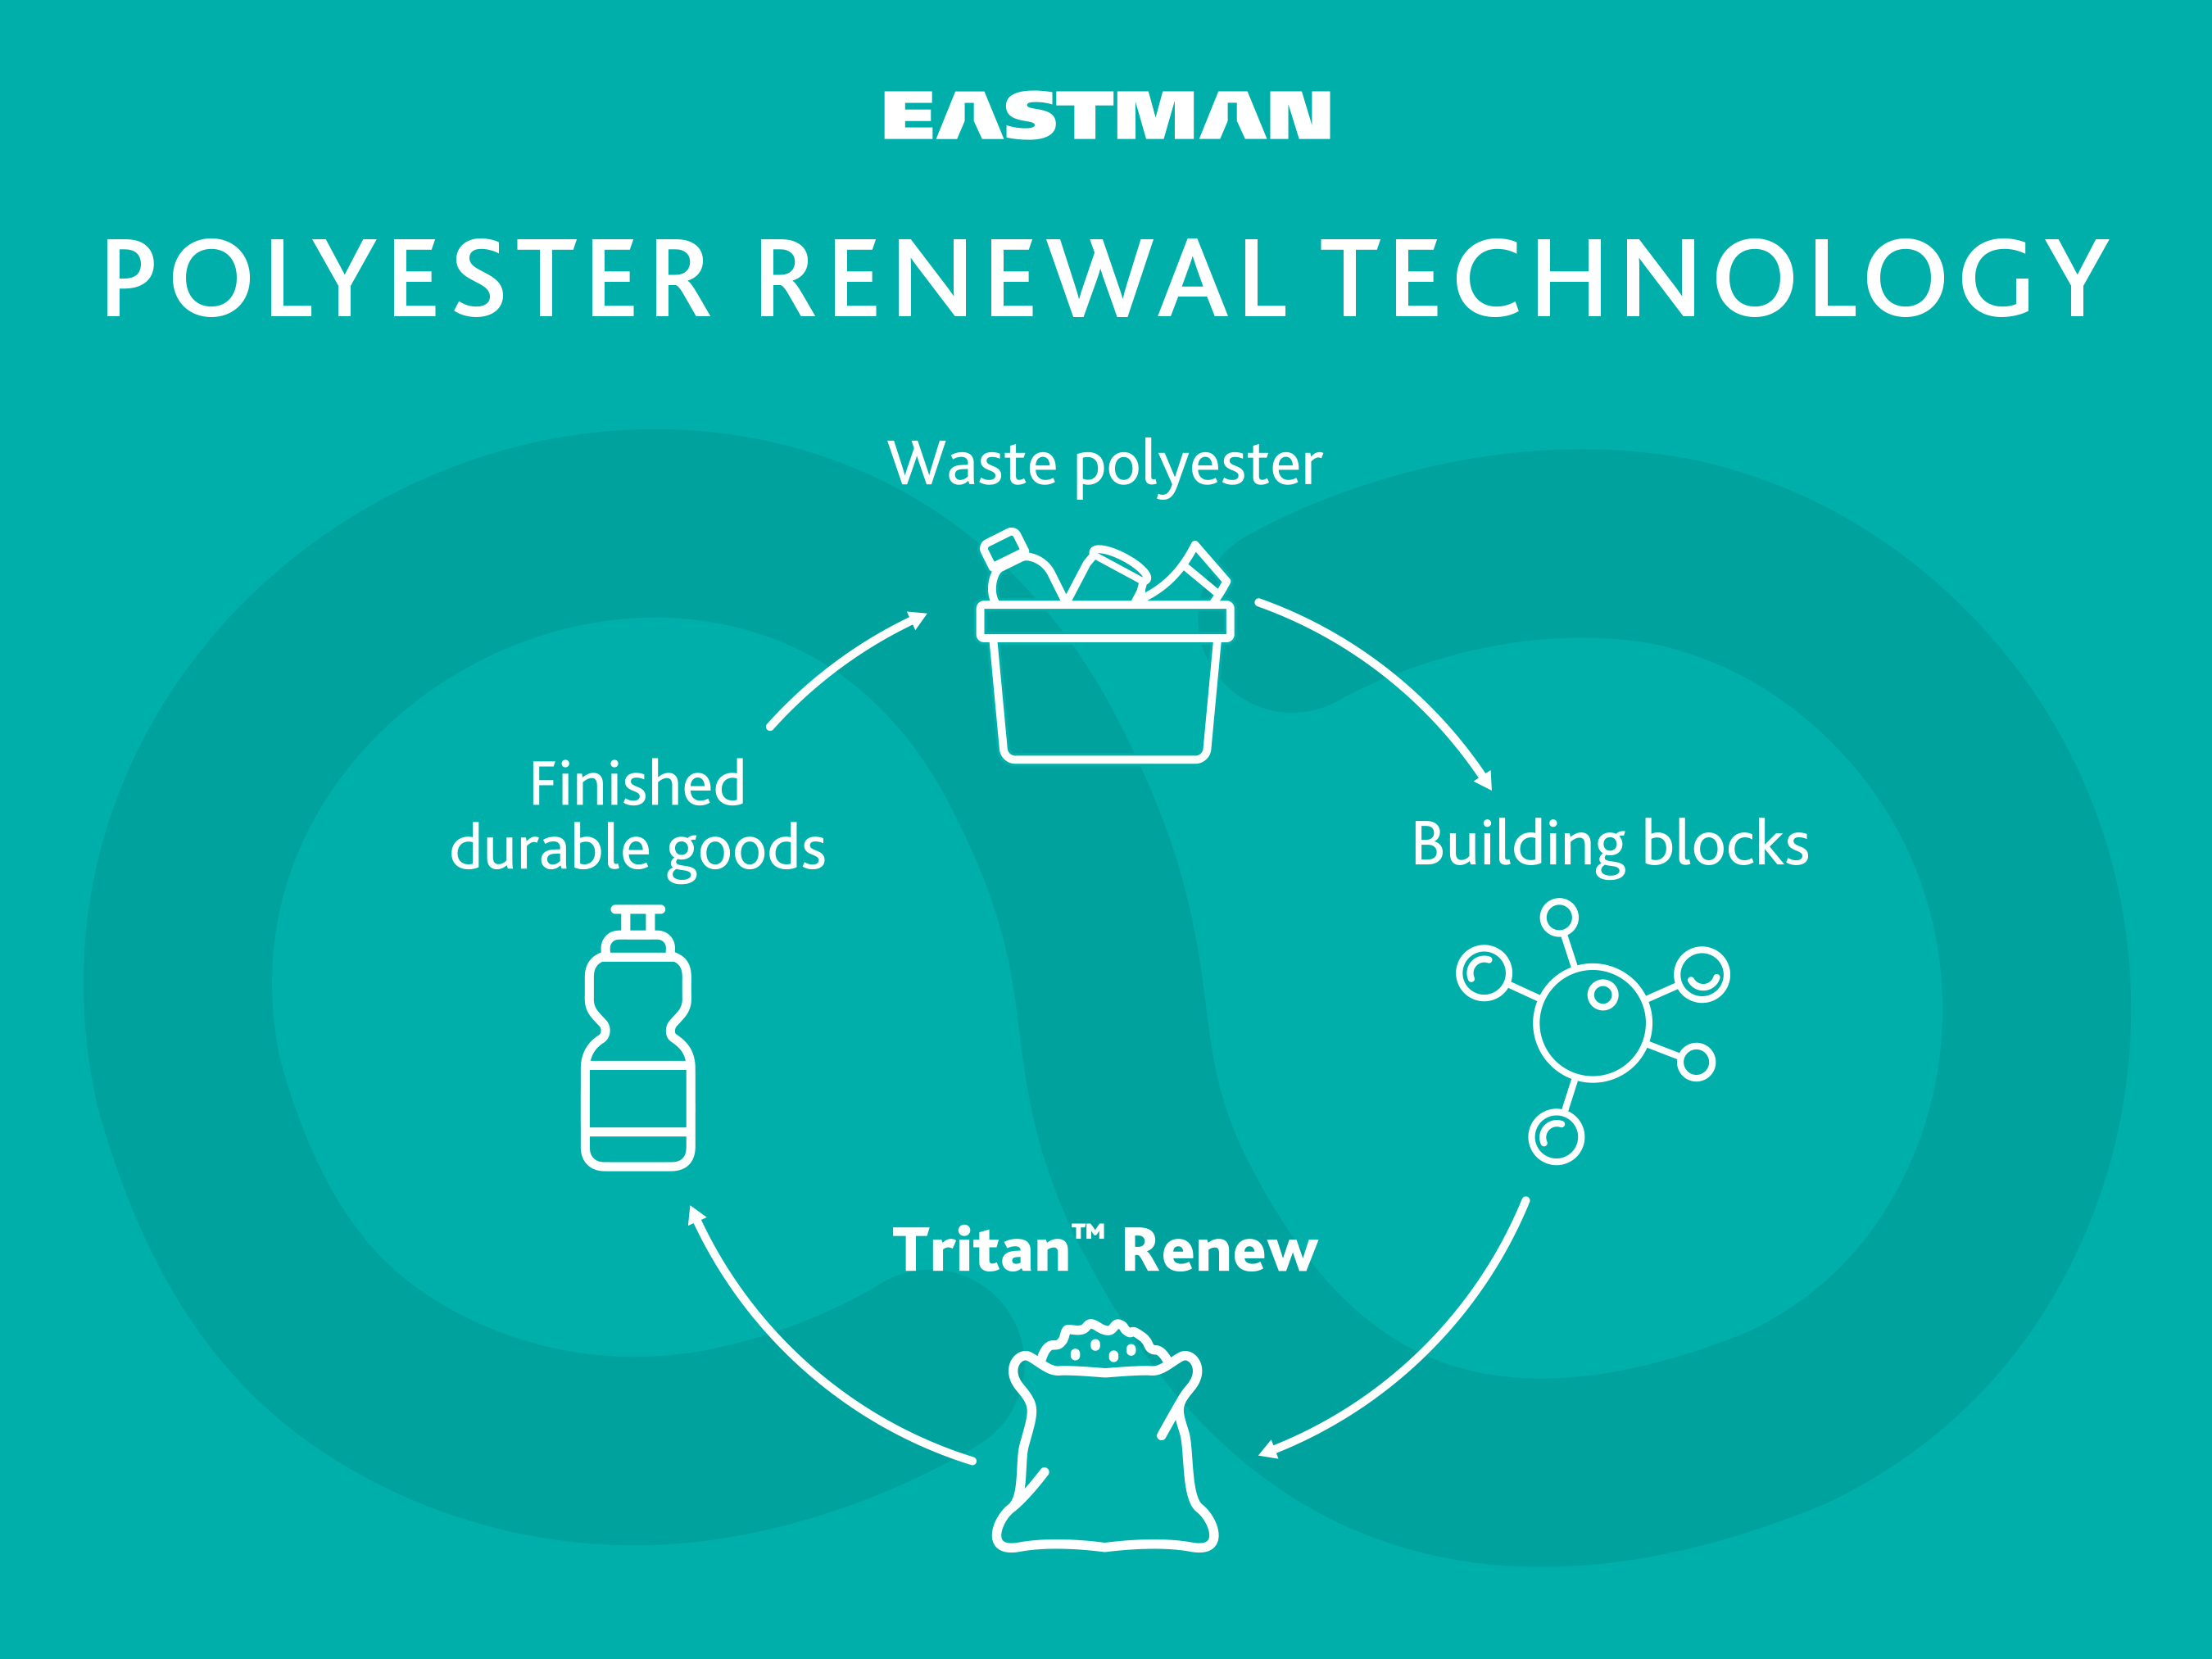 Eastman will produce Tritan Renew with its innovative Advanced Circular Recycling technologies that use recycled plastic as a raw material, reduce consumption of fossil fuel and have lower greenhouse gas footprints.